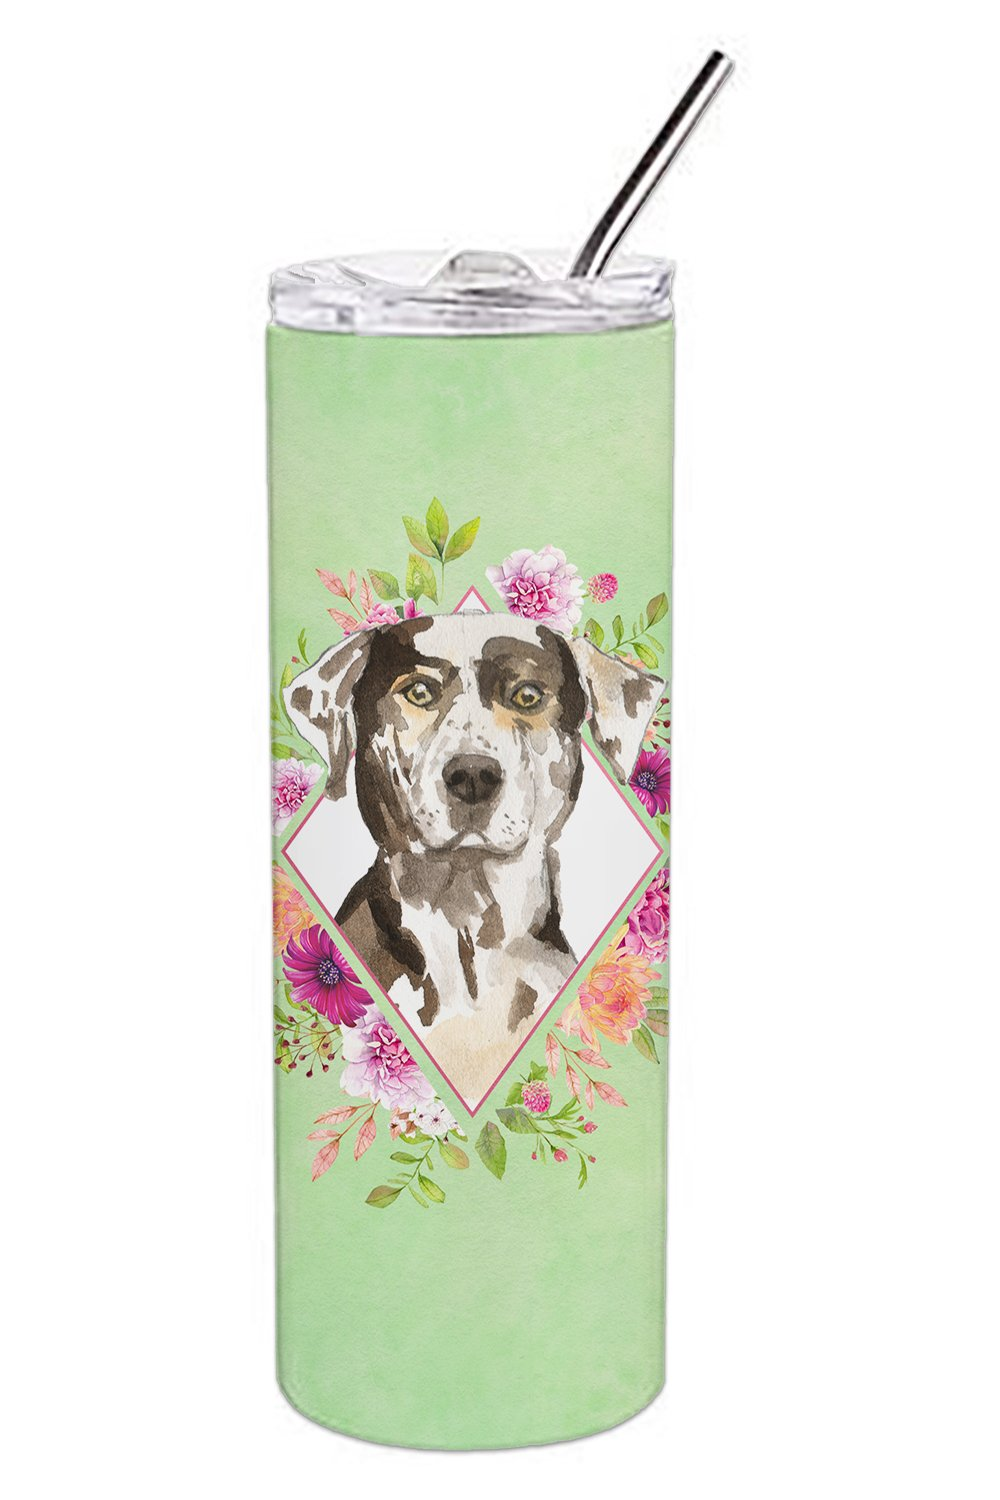 Catahoula Leopard Dog Green Flowers Double Walled Stainless Steel 20 oz Skinny Tumbler CK4409TBL20 by Caroline's Treasures